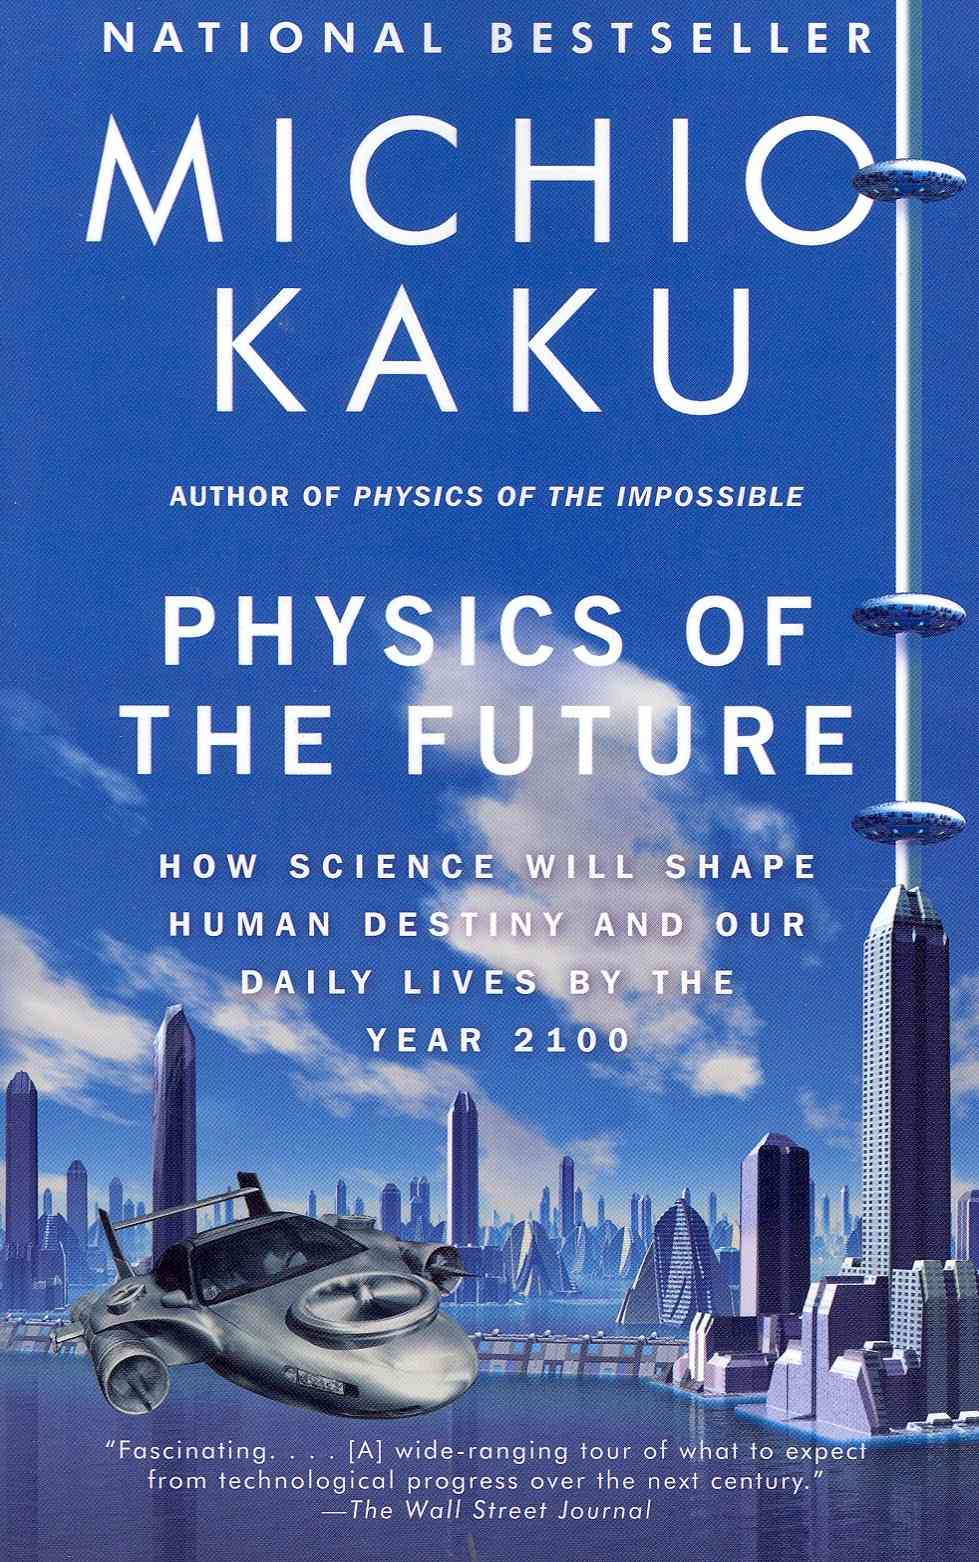 Physics of the Future: How Science Will Shape Human Destiny and Our Daily Lives by the Year 2100 (Paperback)